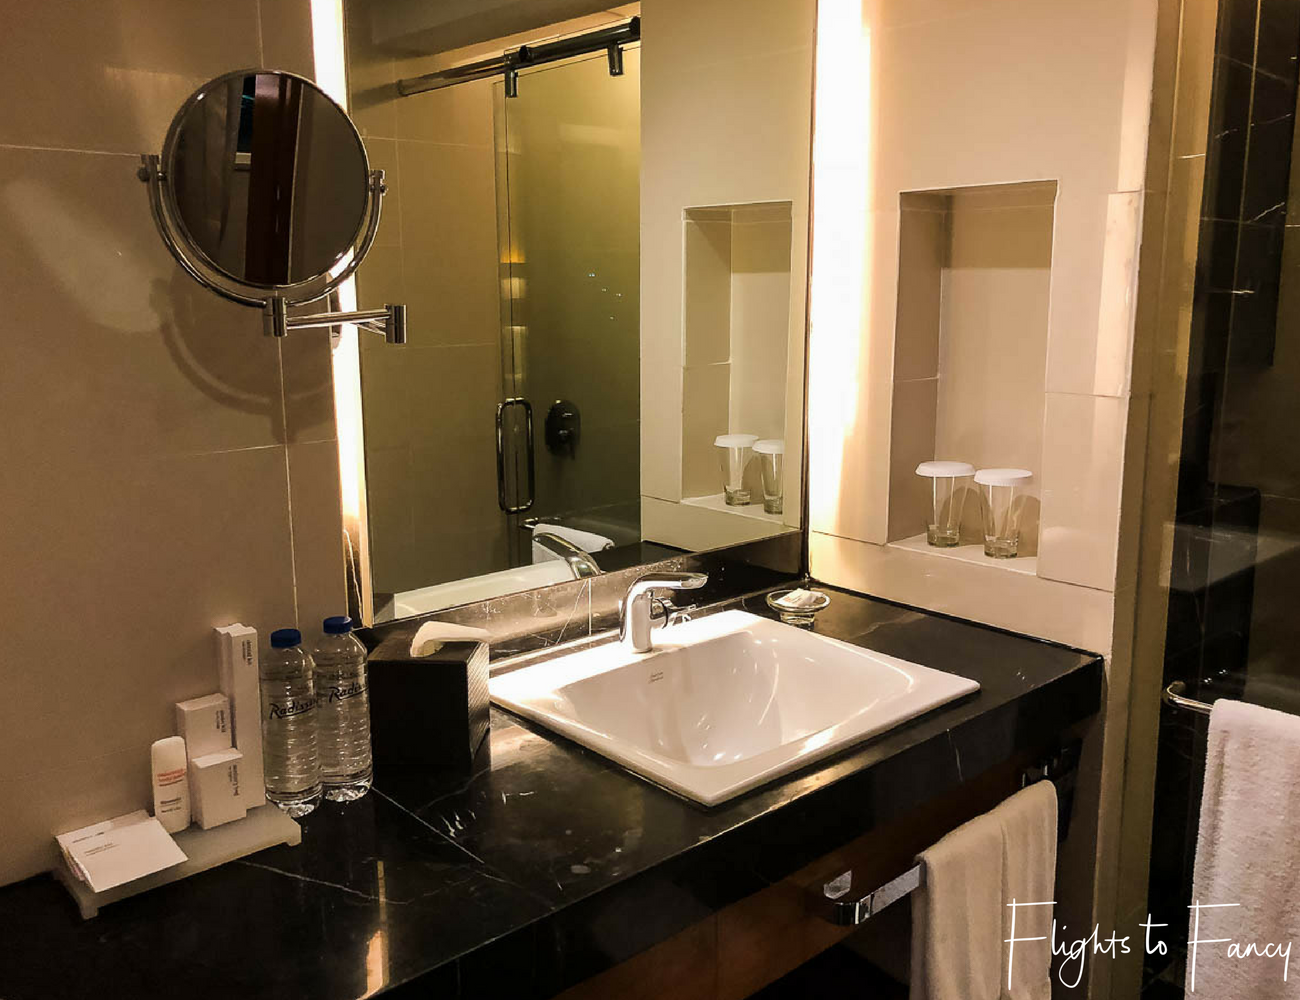 Flights To Fancy @ Radisson Blu Cebu City. Luxury bathroom